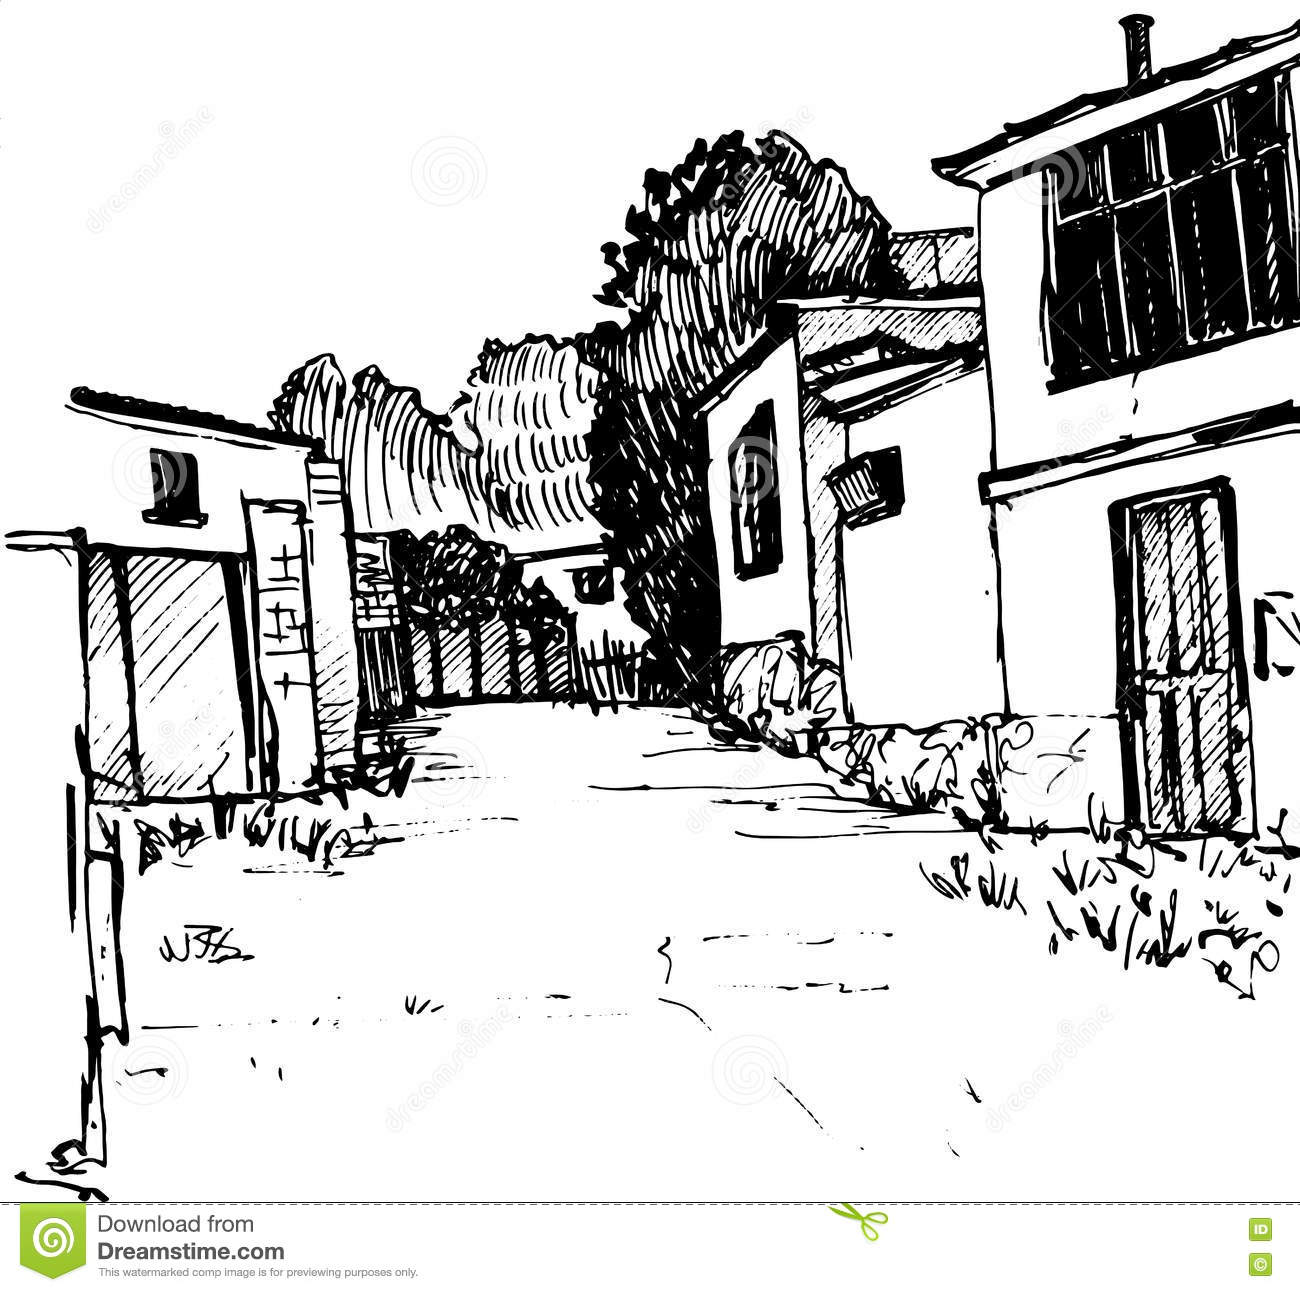 Village street urban sketch road and buildings hand drawn vector illustration by ink pen